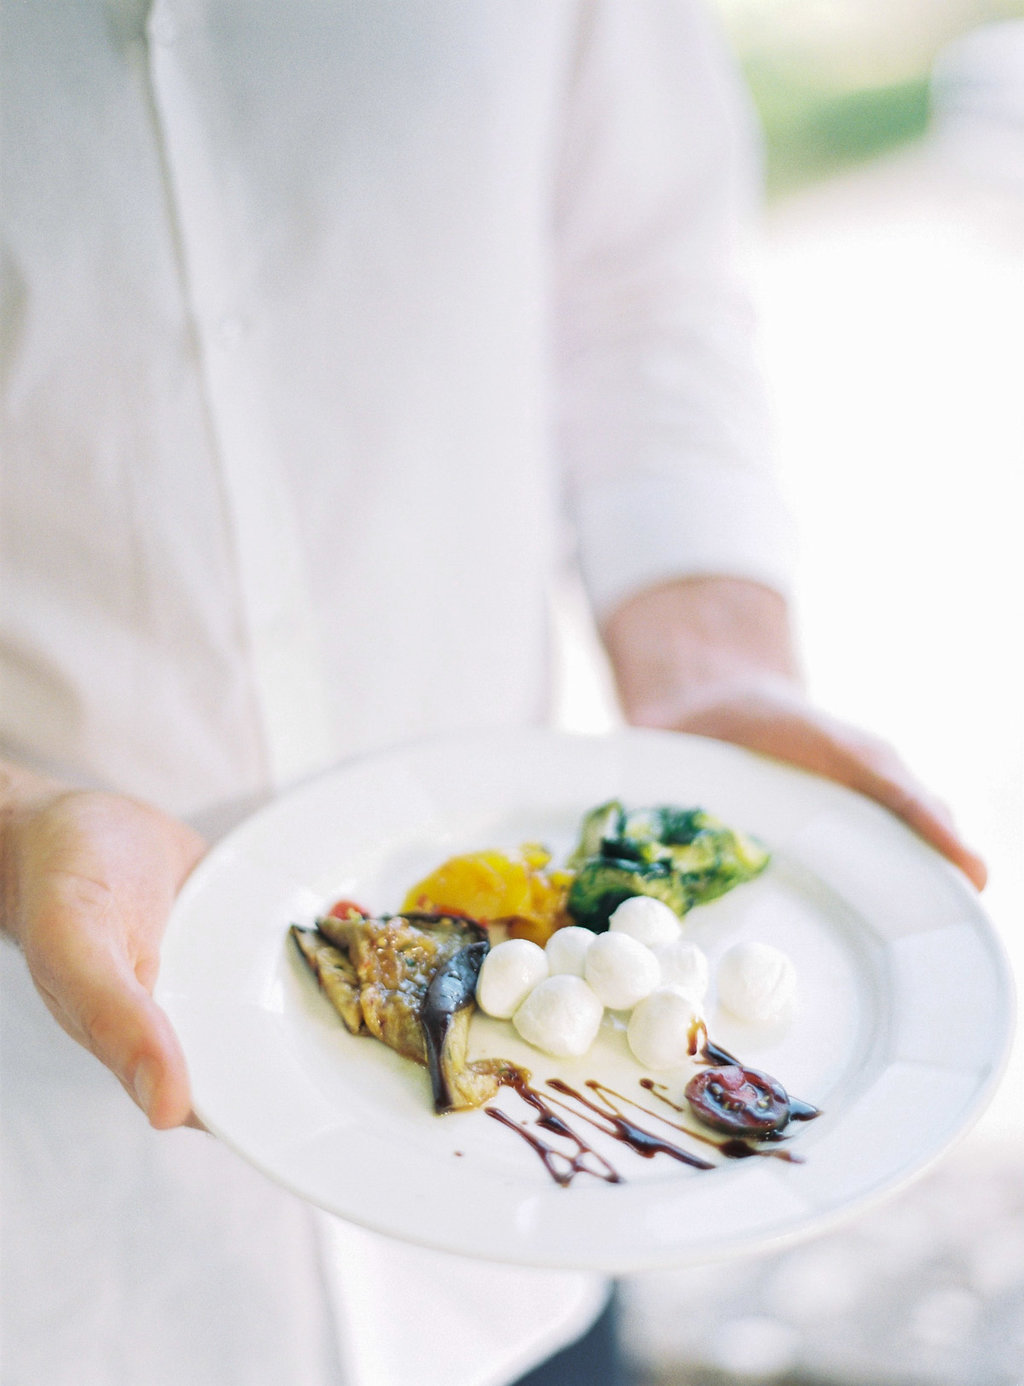 gourmet wedding catering - photo by Katie Grant Photography http://ruffledblog.com/classically-beautiful-intimate-wedding-in-tuscany